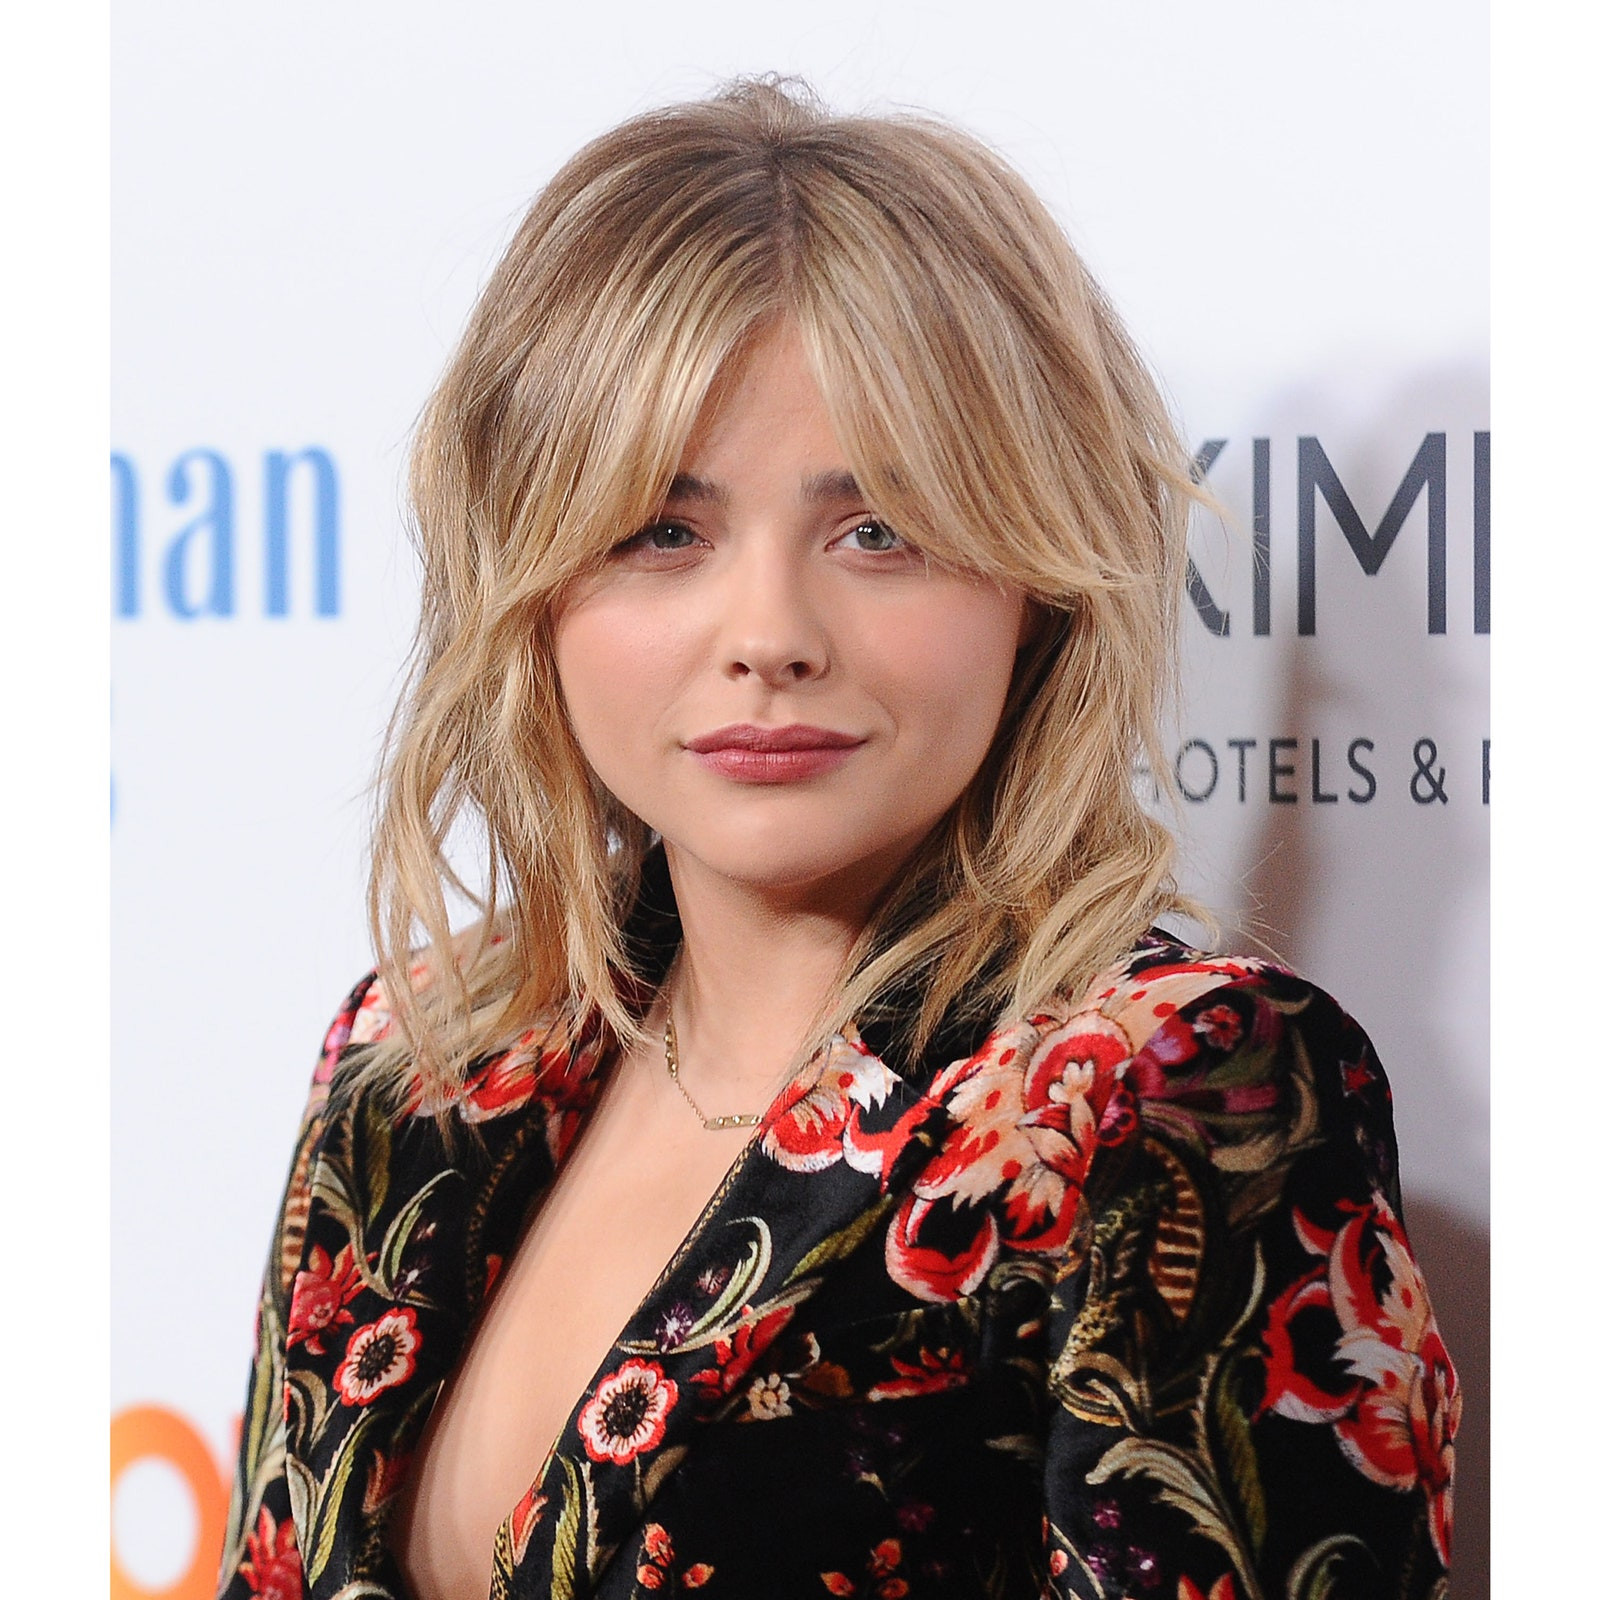 How To Cut Bangs On Long Hair  15 Best Hairstyles With Bangs Ideas for Haircuts With